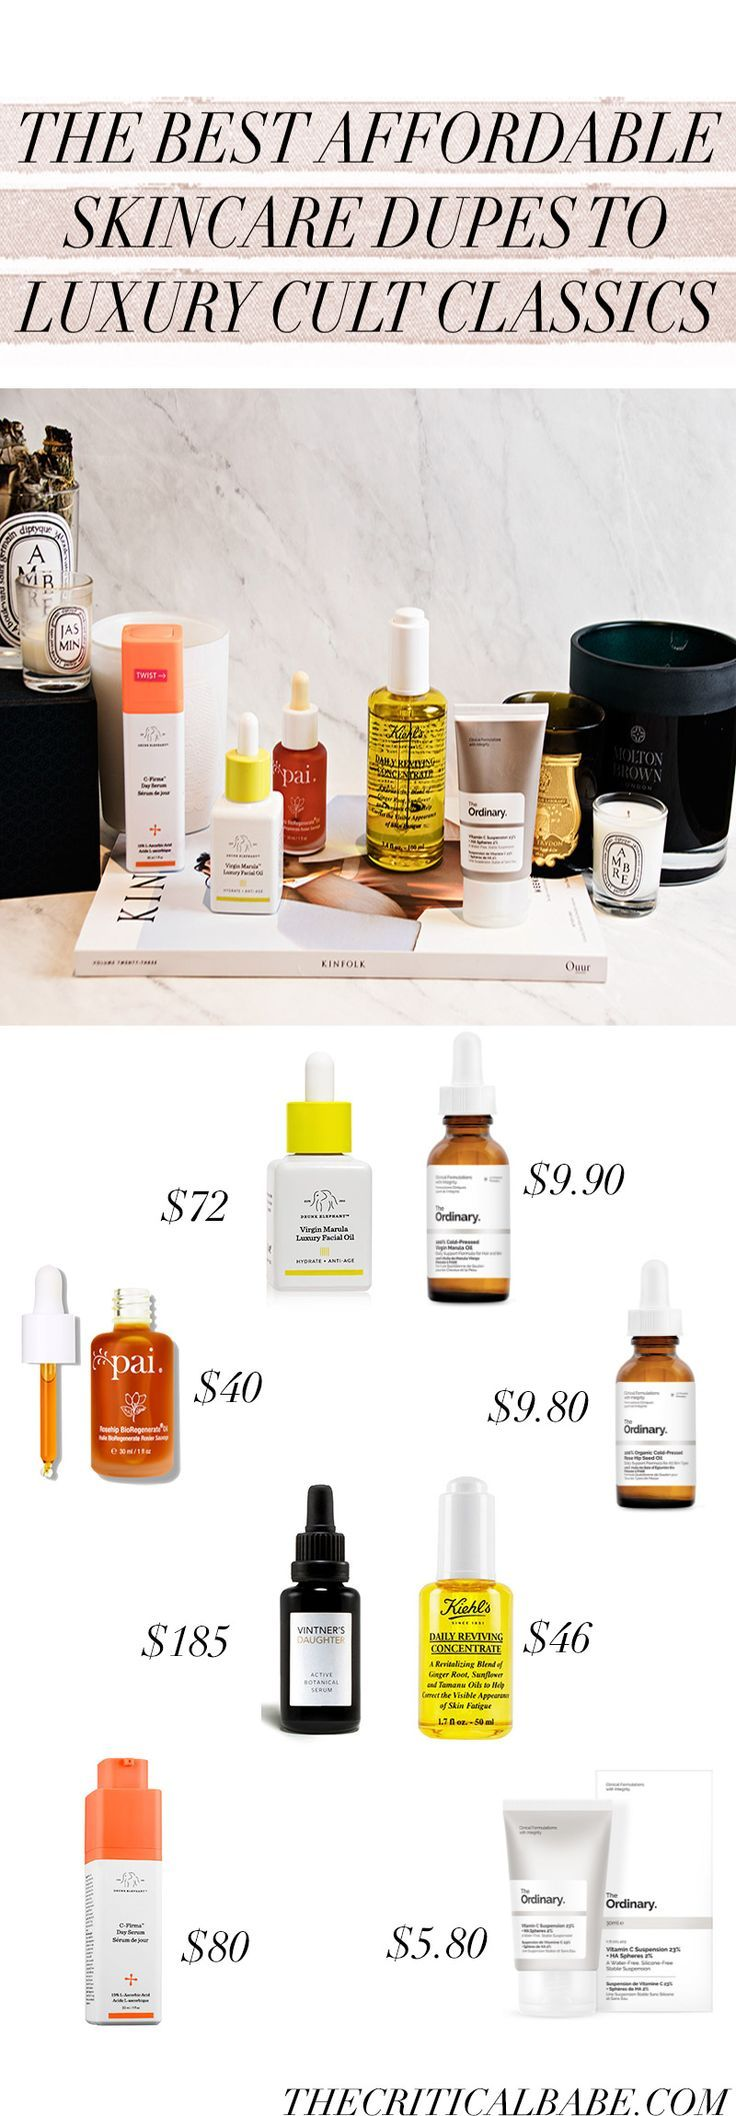 Affordable skincare dupes to some cult classics! Today I'm bringing you some dupes to Drunk Elephant's C Firma, Pai's Rosehip Seed Oil, Vintner's Daughter Active Botanical Serum, and the Marula Oil by Drunk Elephant. Some of these are provided by Deciem's The Ordinary and some are surprises!